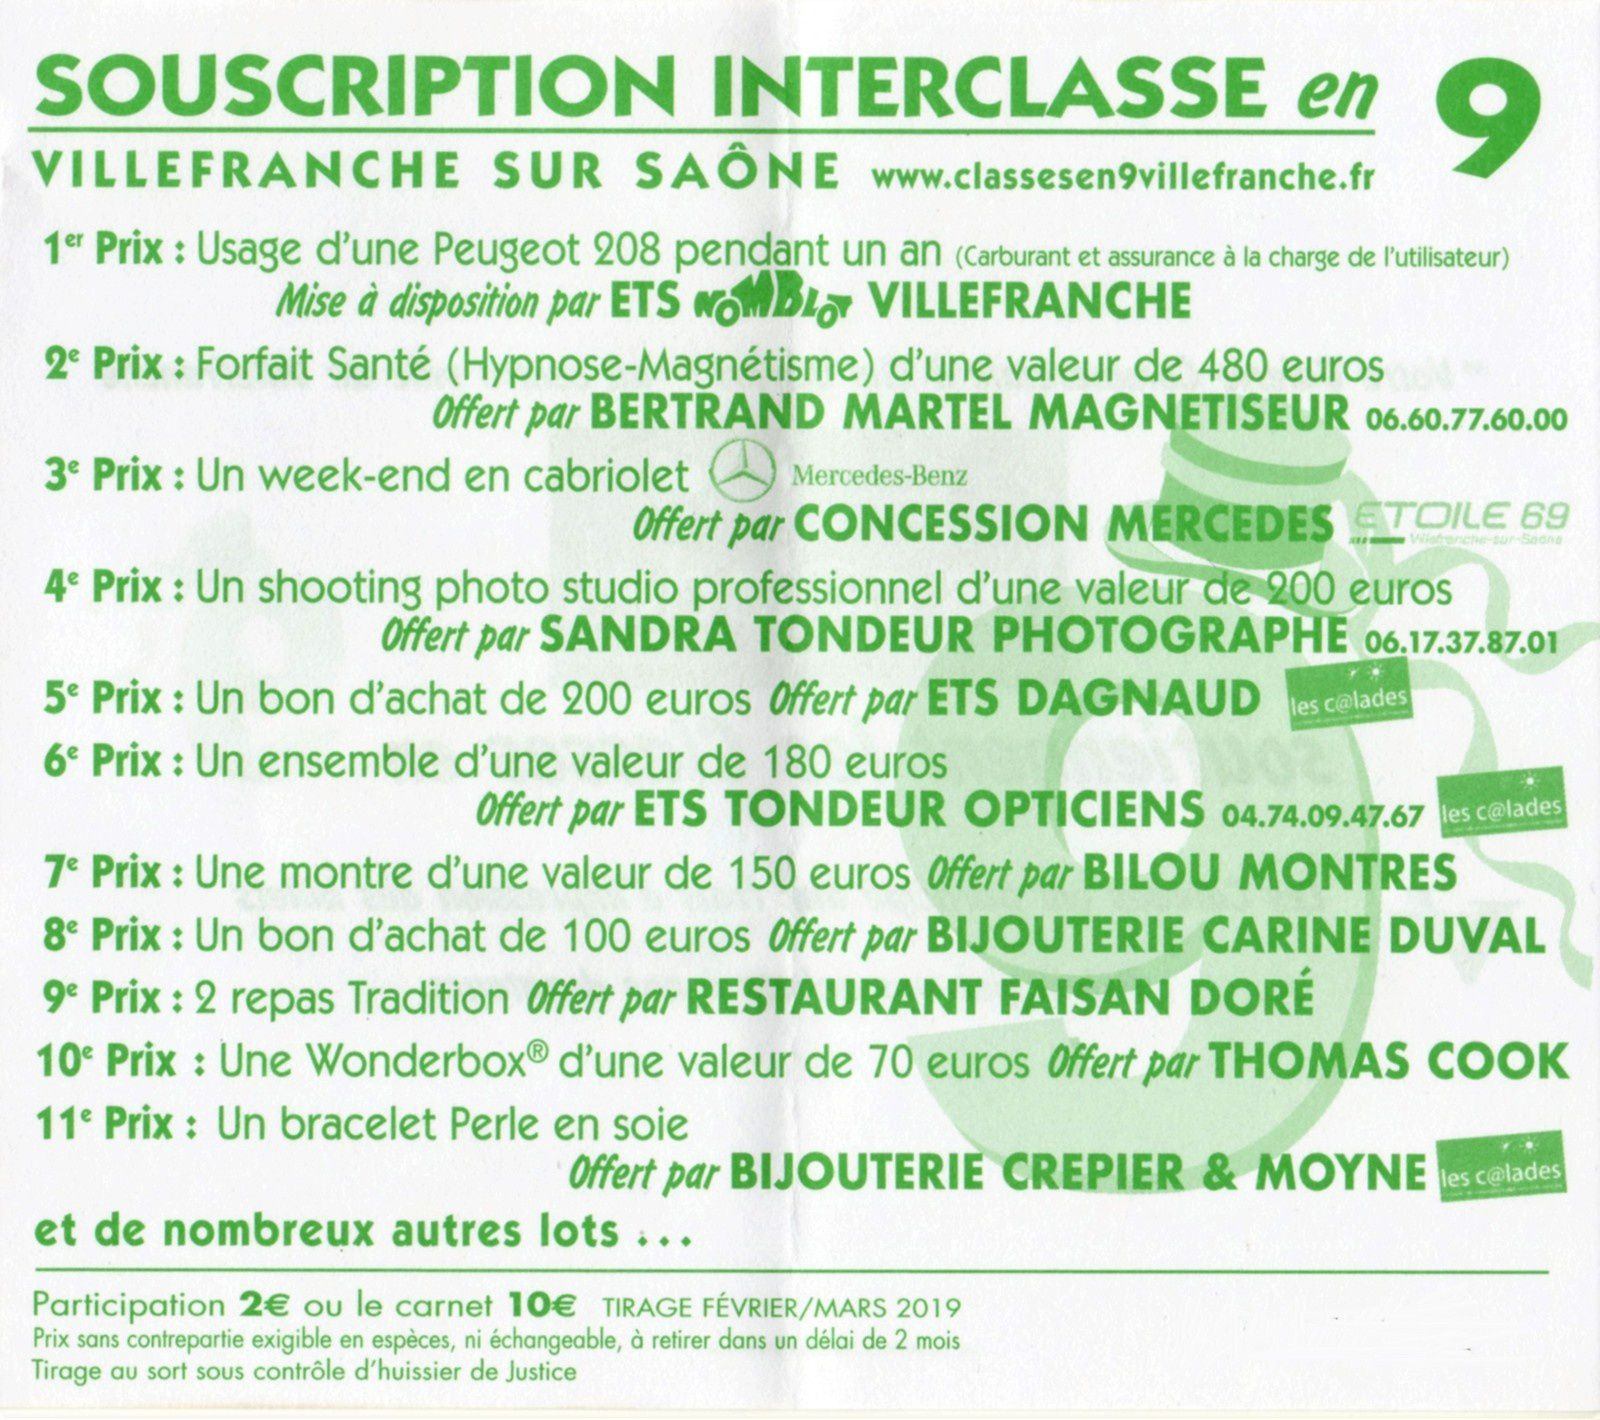 RÉSULTATS DE LA TOMBOLA DES CONSCRITS DES CLASSES EN 9